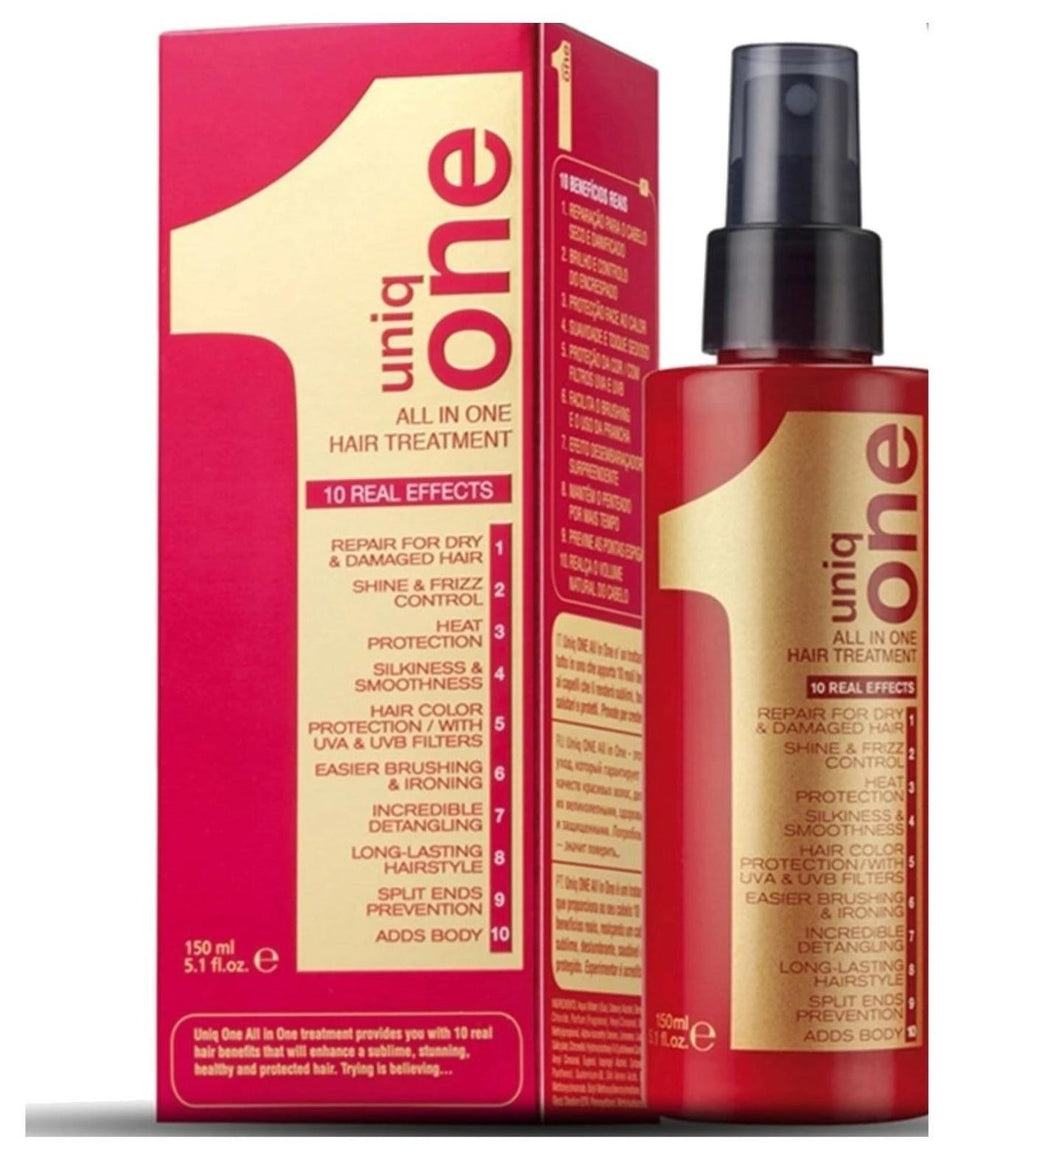 iaahhaircare,Revlon Professional Uniq One All In One Hair Treatment 150ml,Shampoos & Conditioners,Revlon